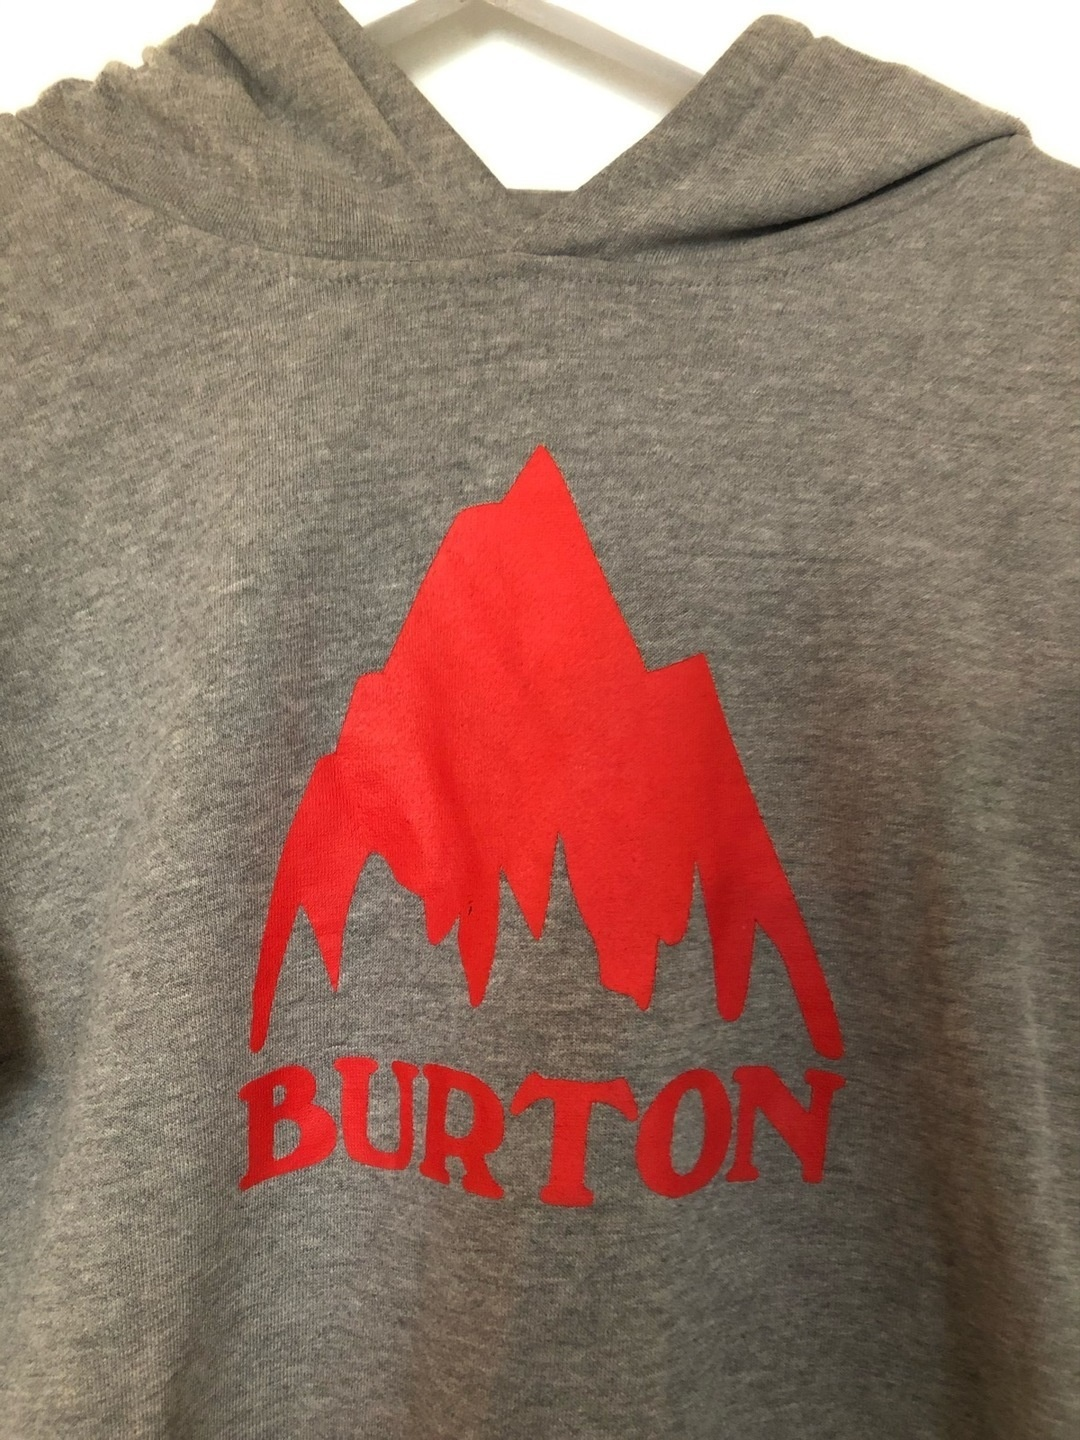 Women's hoodies & sweatshirts - BURTON photo 3